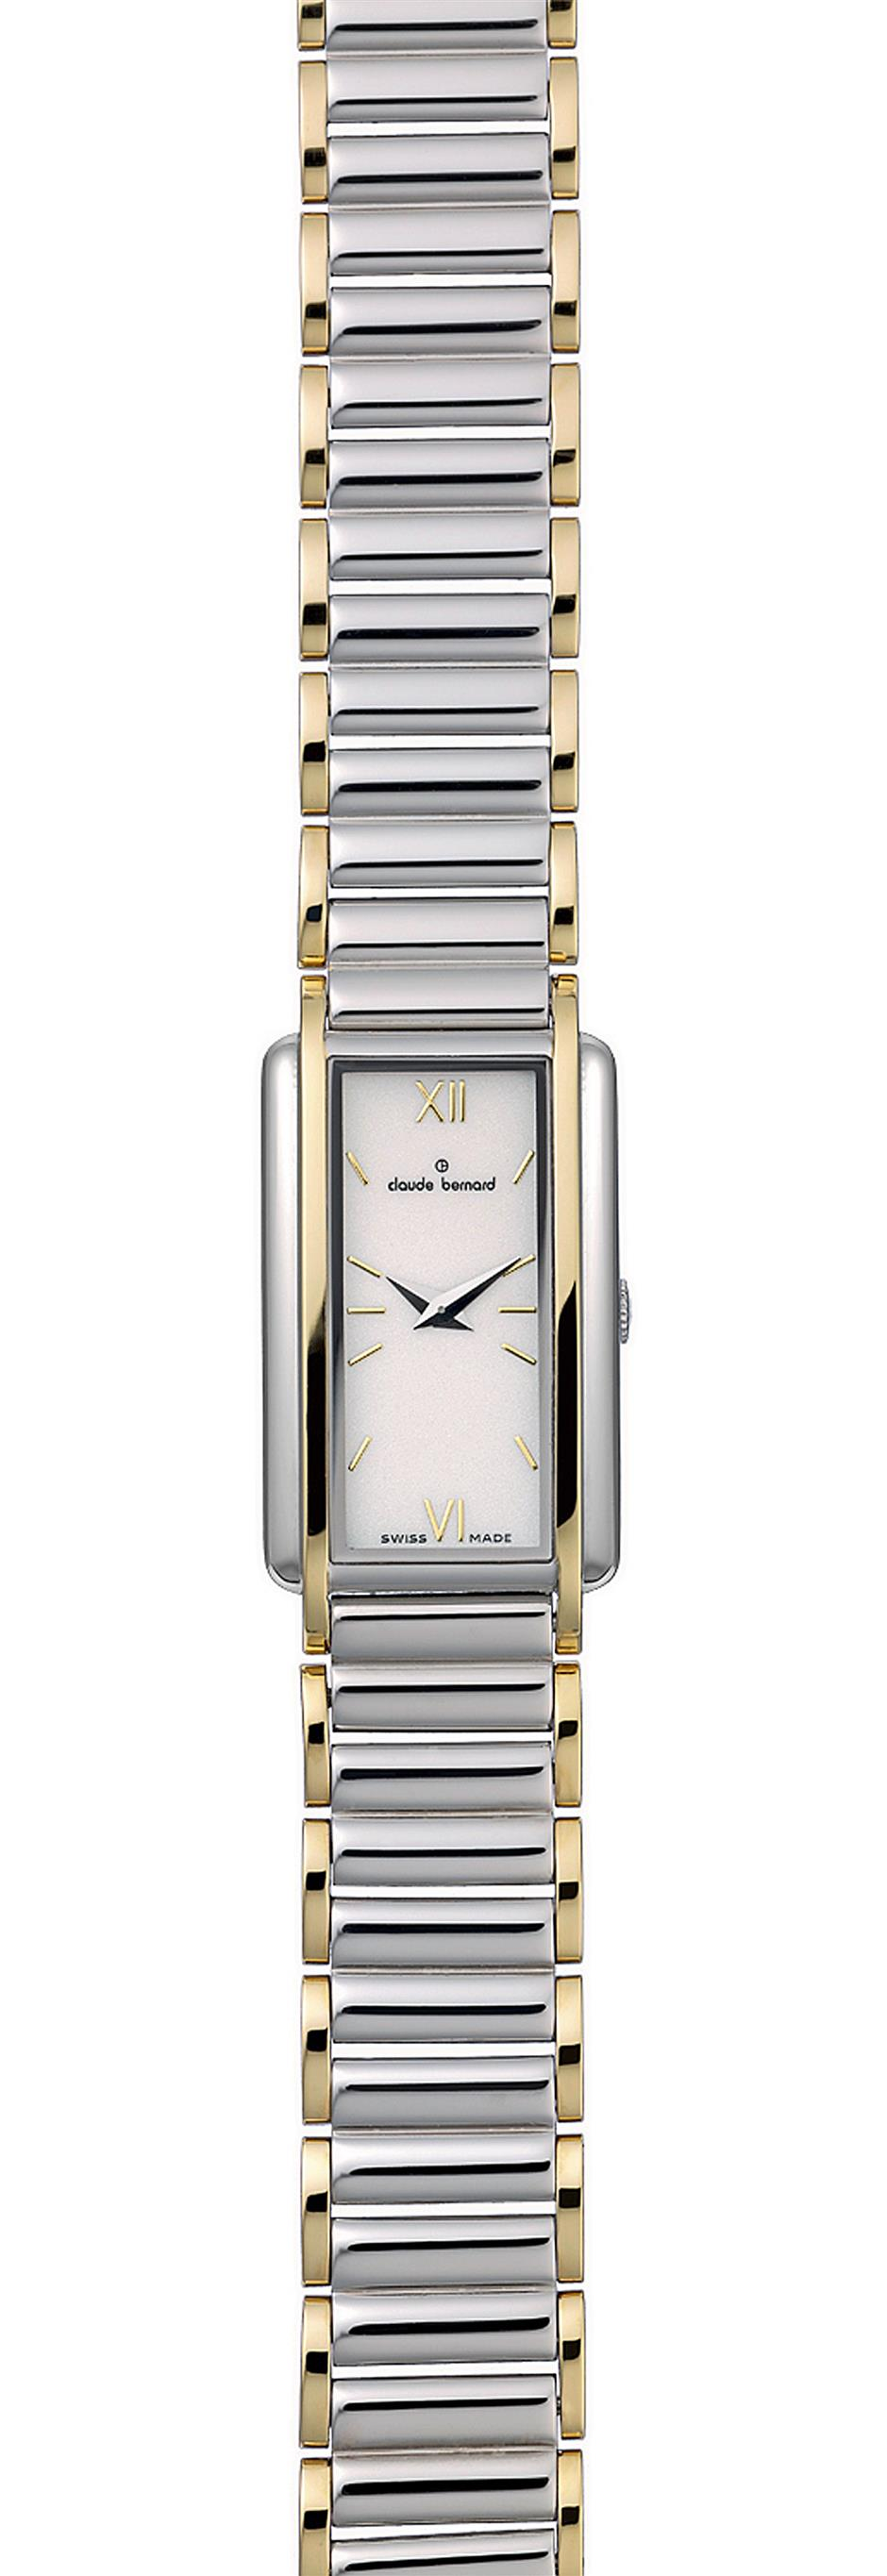 The company also introduced its new Lady Luna collection of quartz watches featuring mother-of-pearl dials.